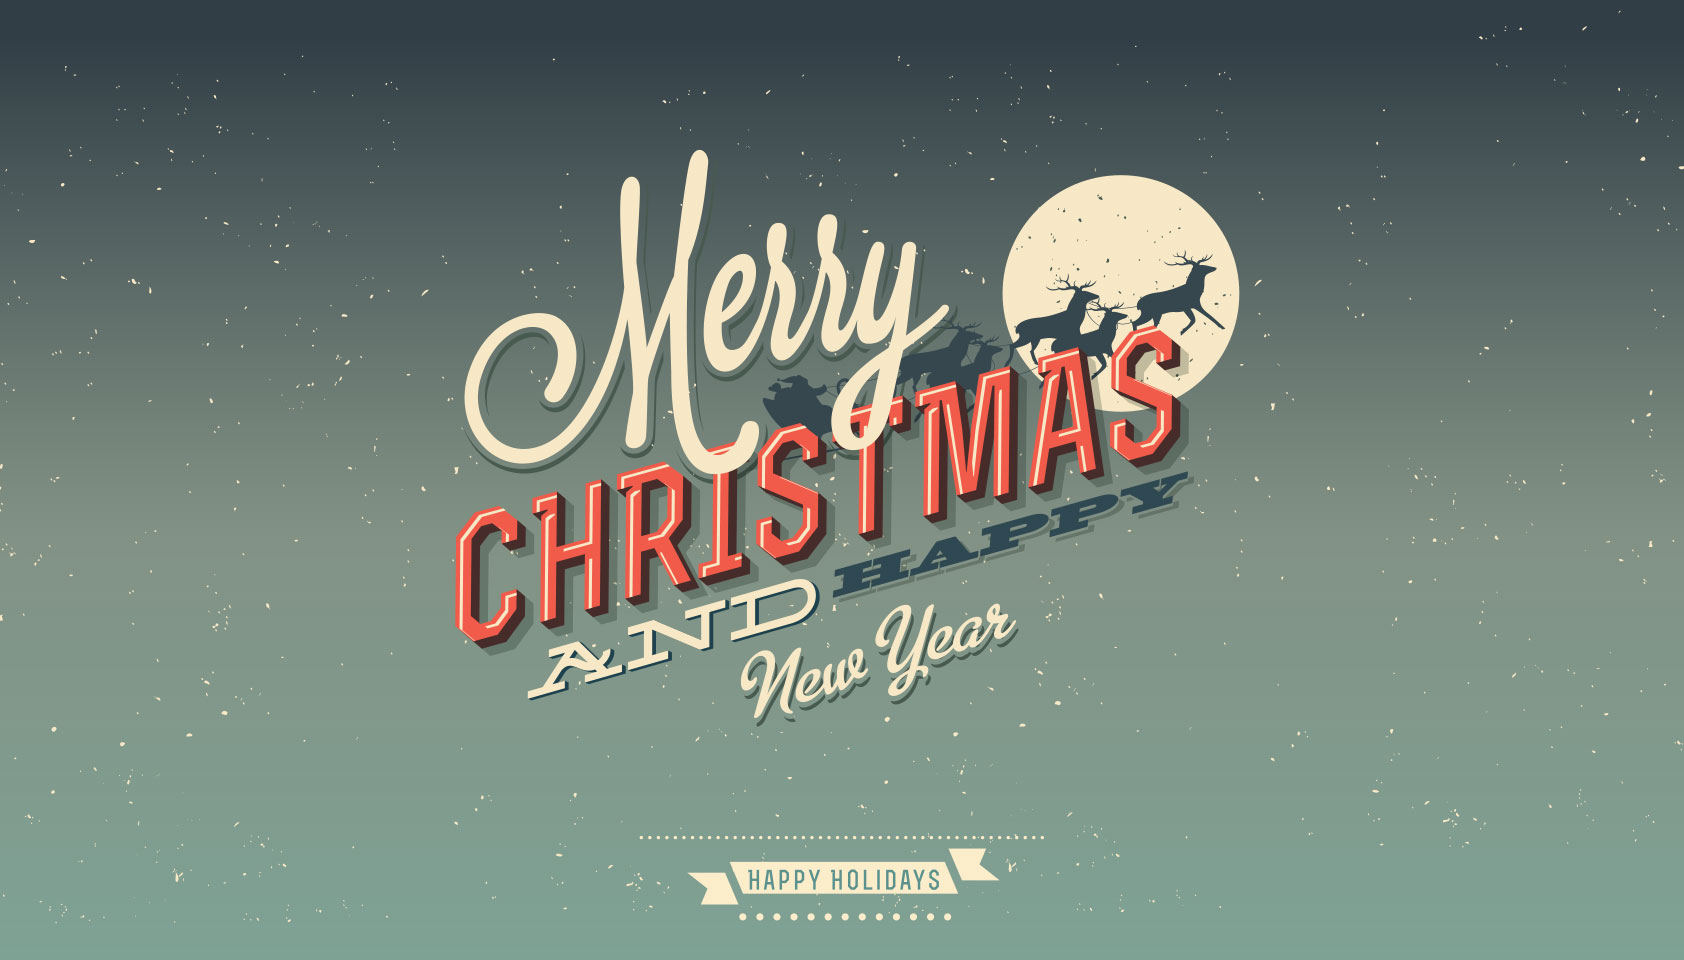 Email Christmas Cards.How To Send Clients Some Christmas Cheer Webdesigner Depot